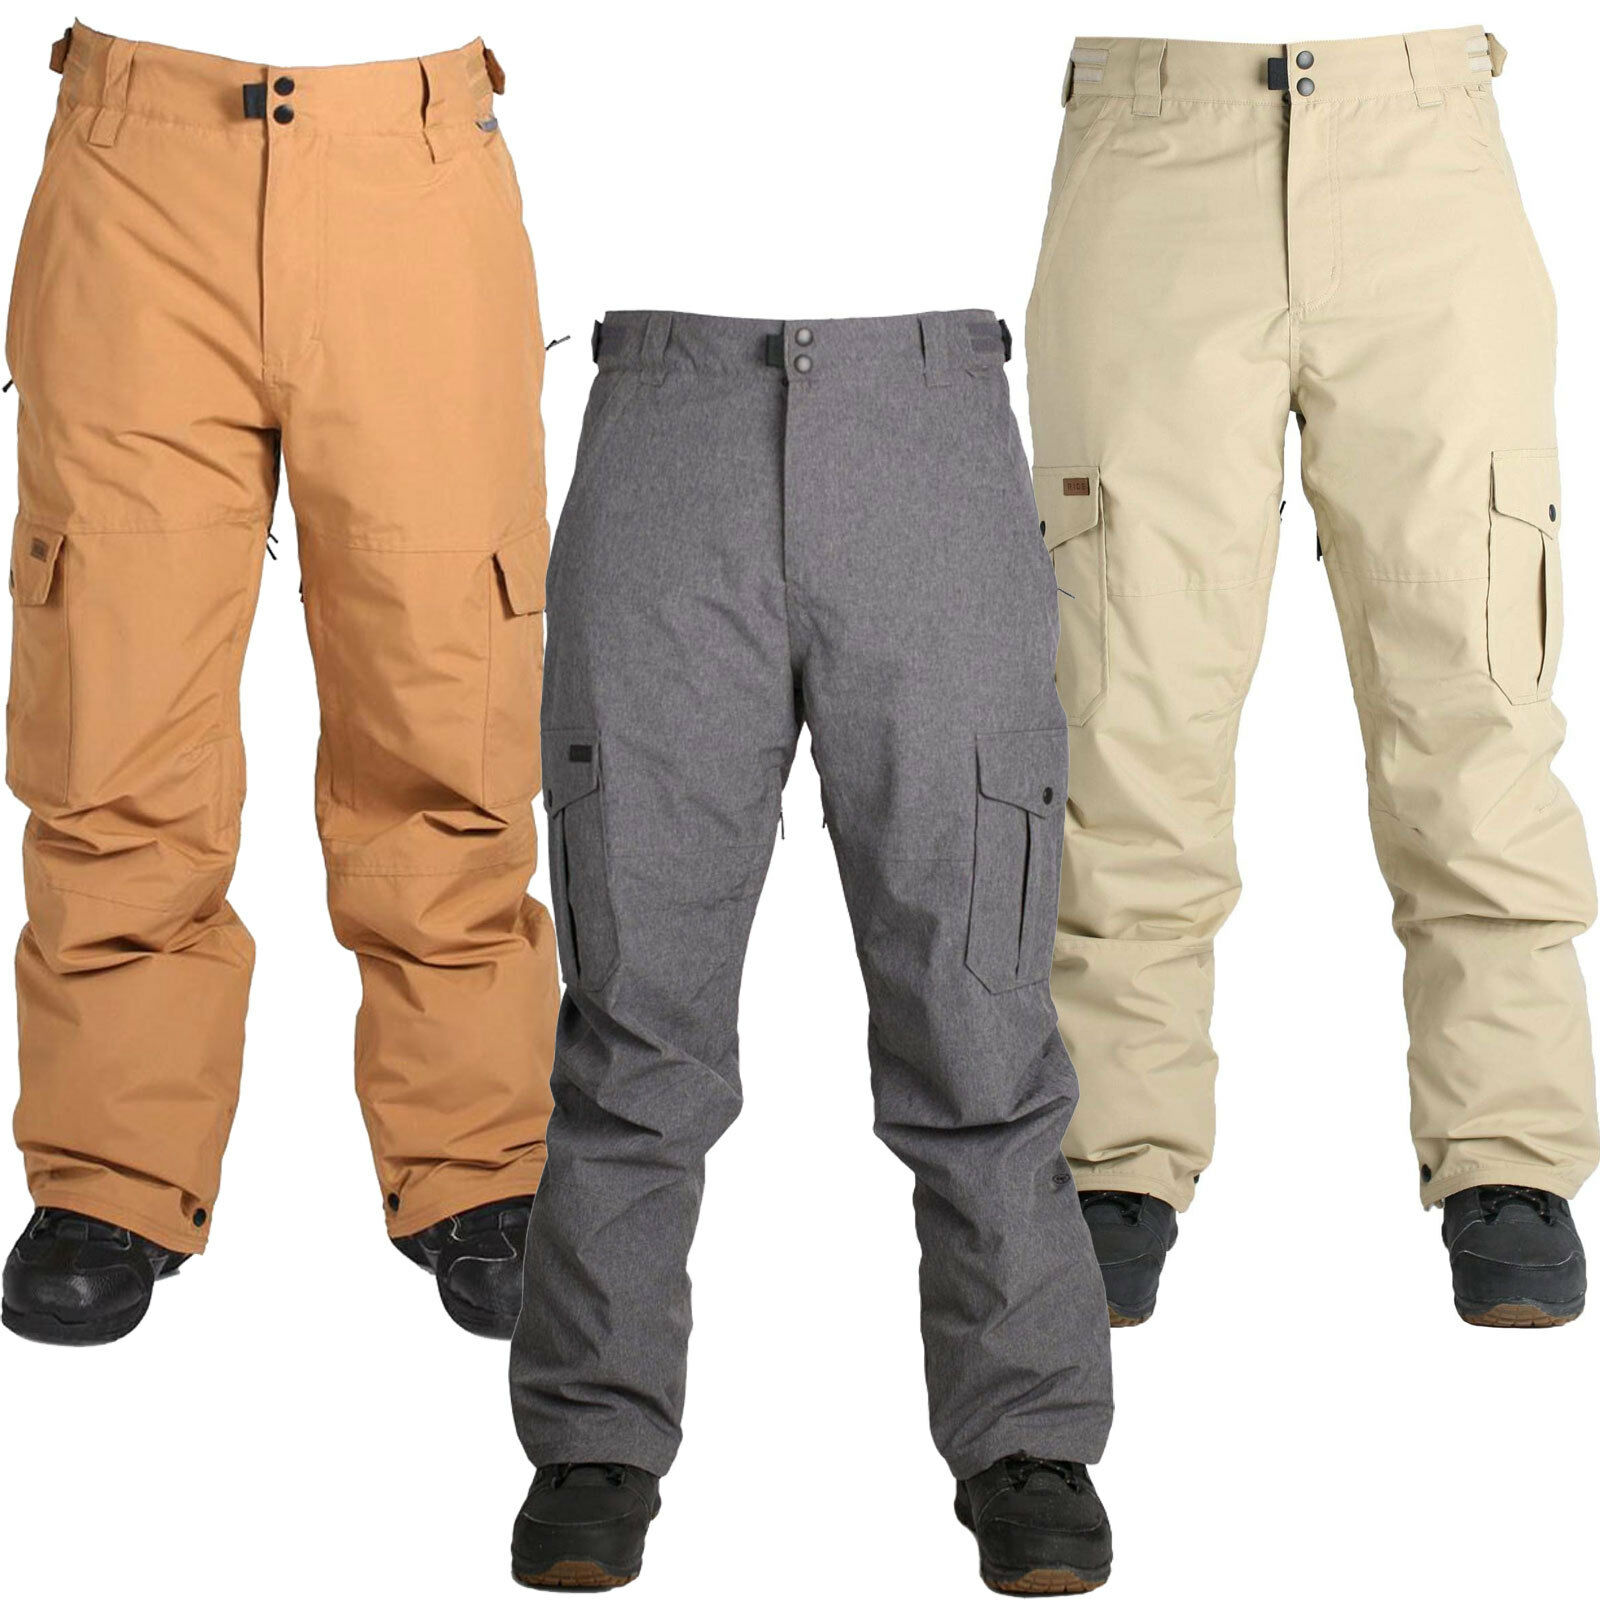 Ride Phinney Insulated Pant Men's Snowboard Ski Snow Winter Trousers